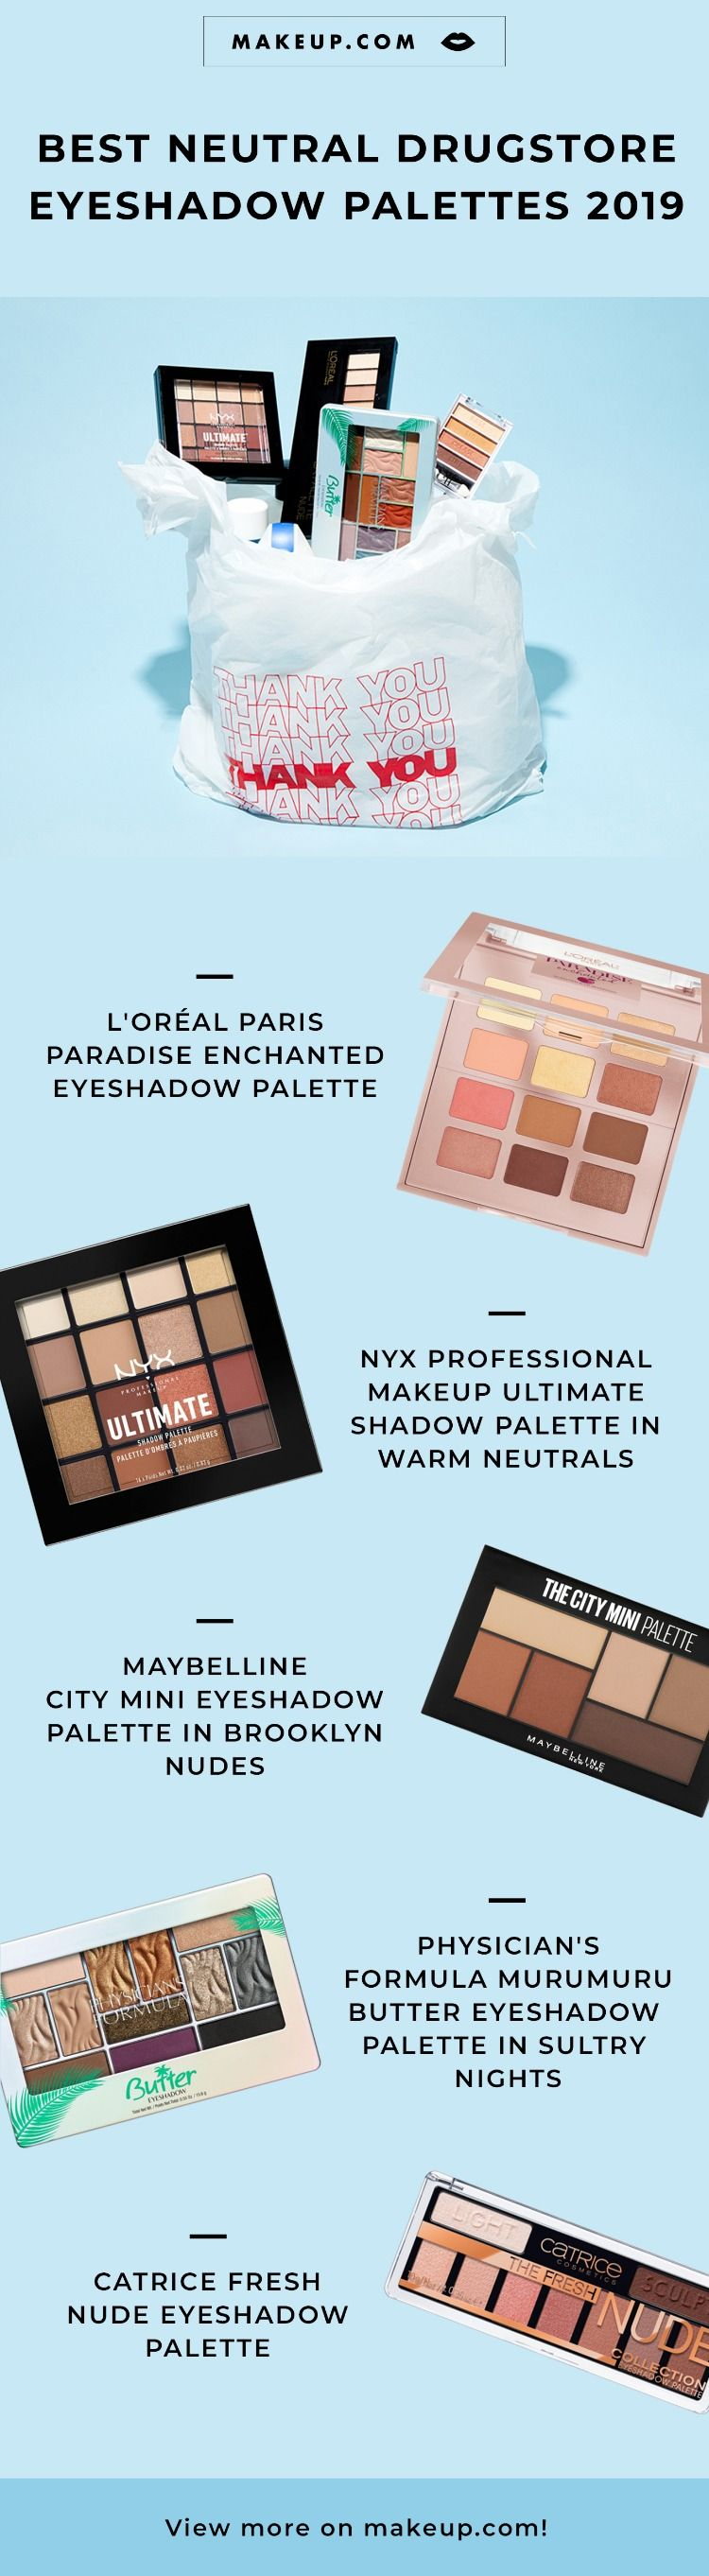 7 Neutral Eyeshadow Palettes to Pick Up from the Drugstore